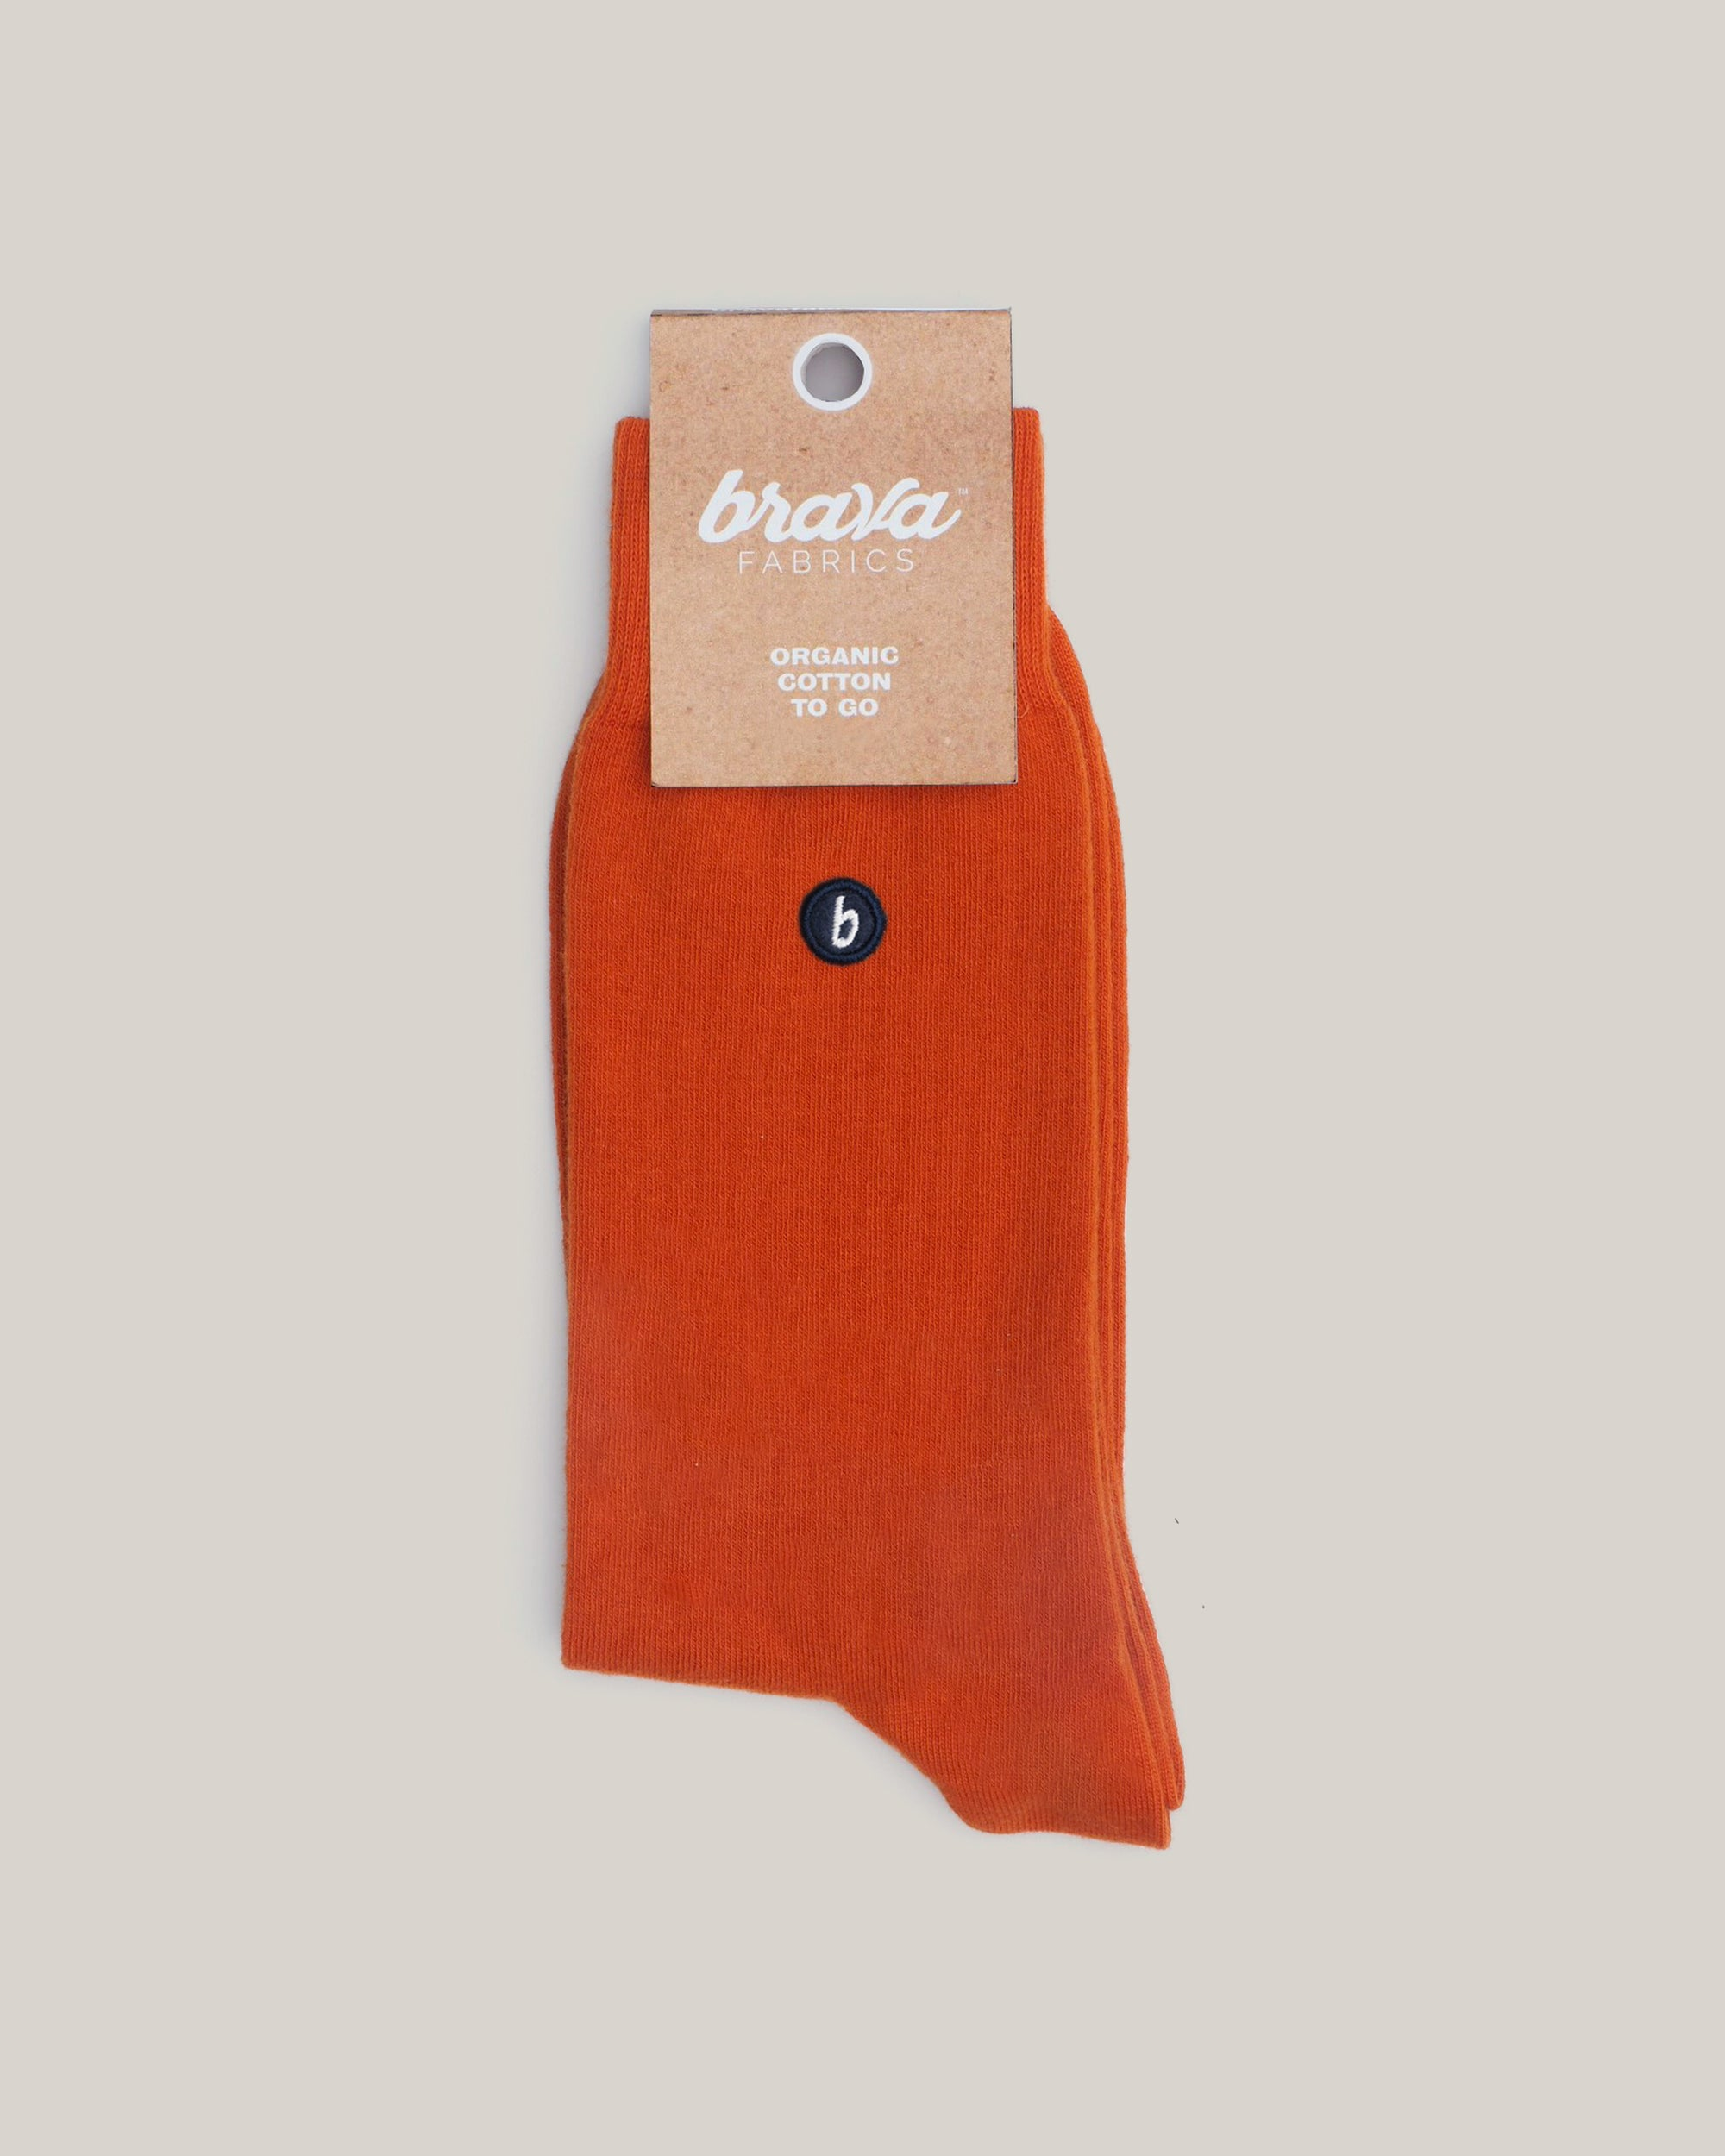 Organic Cotton Socks Orange